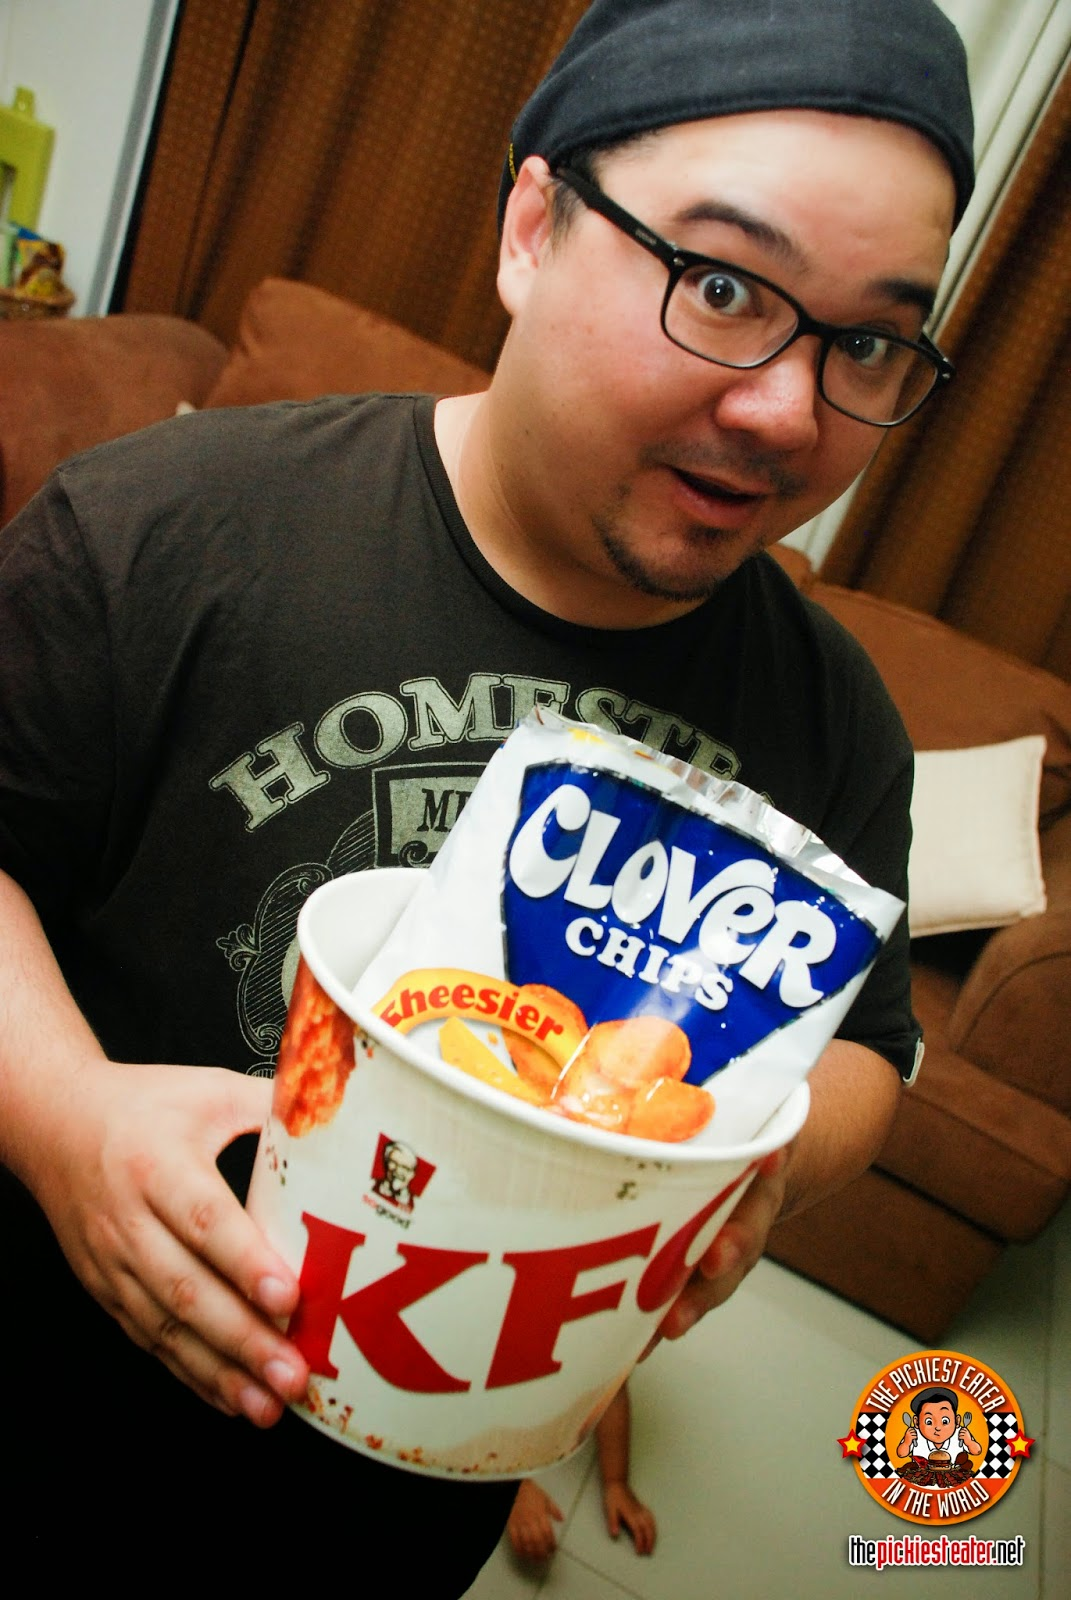 kfc and clover chips